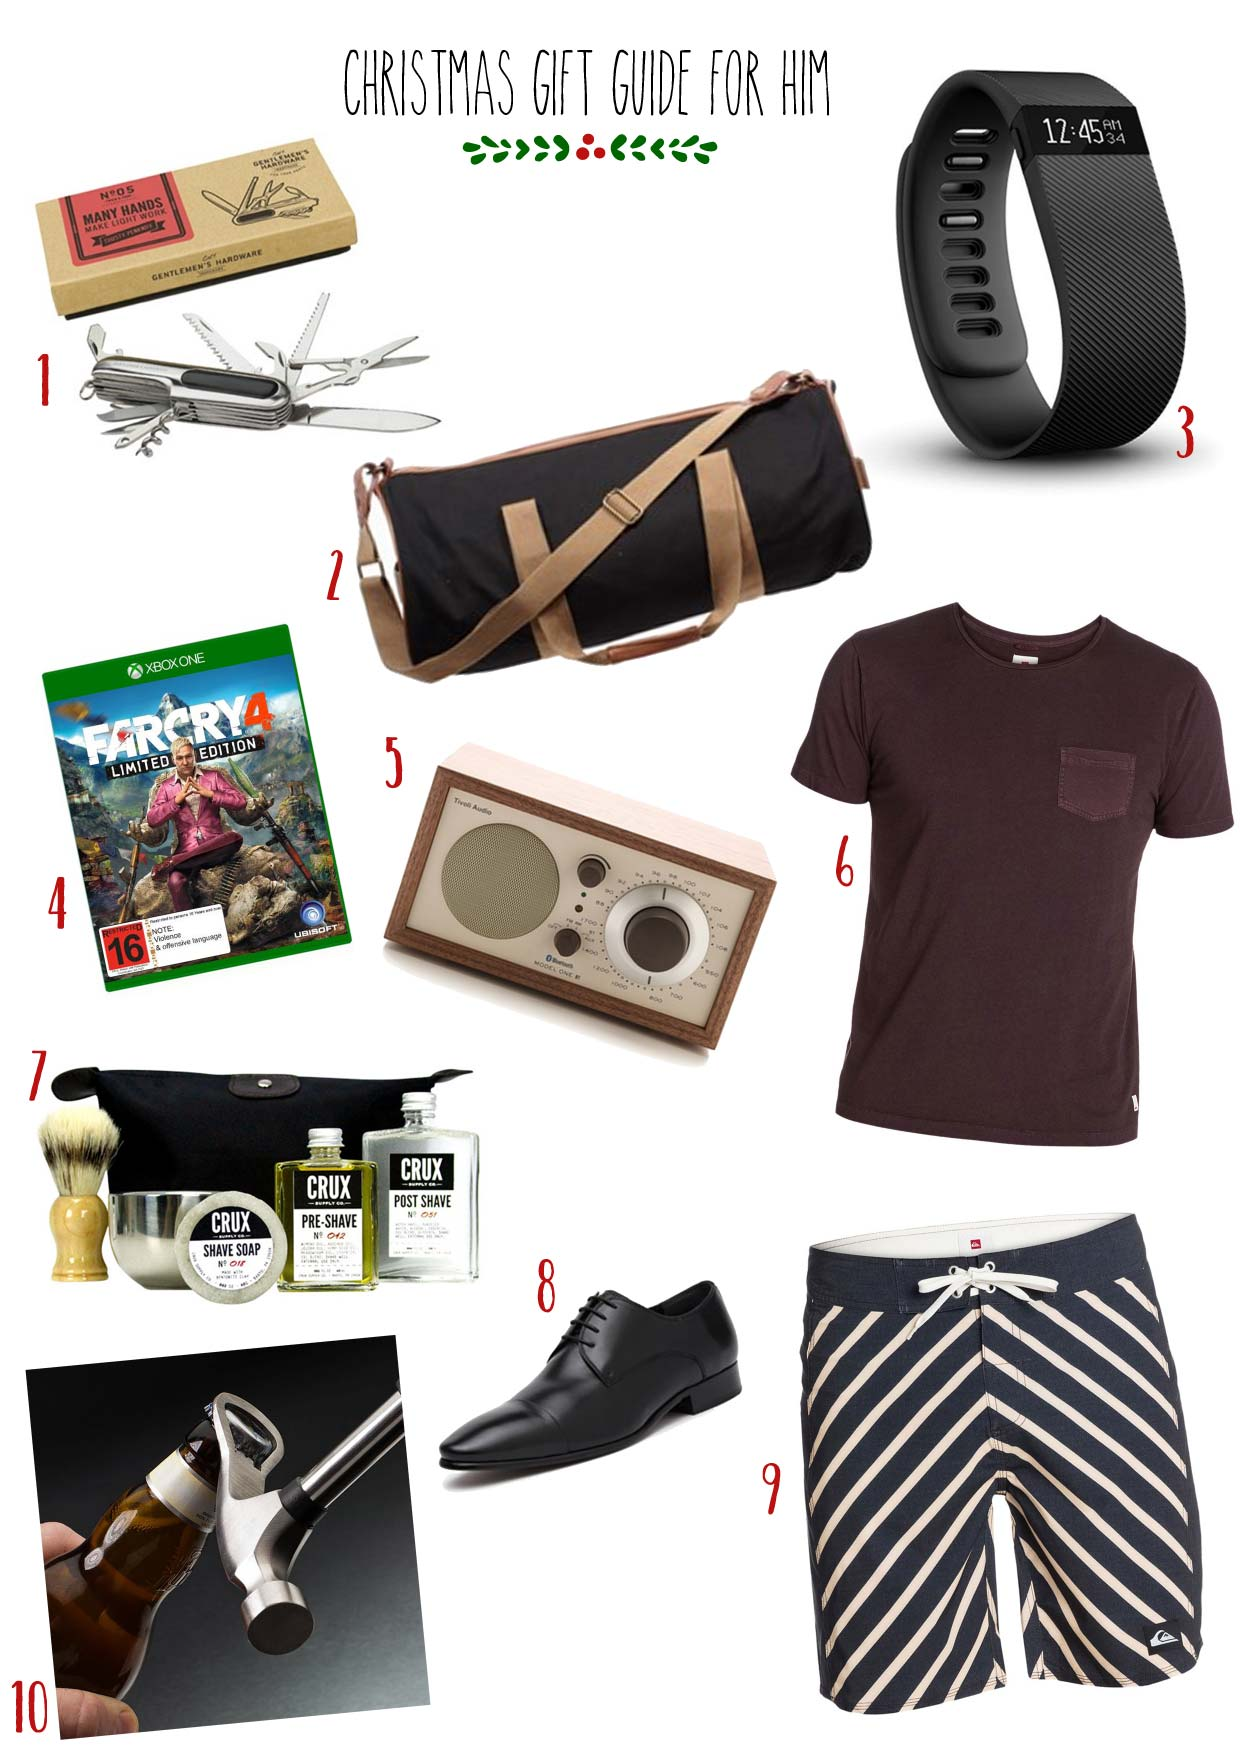 gift guide 4 him-01